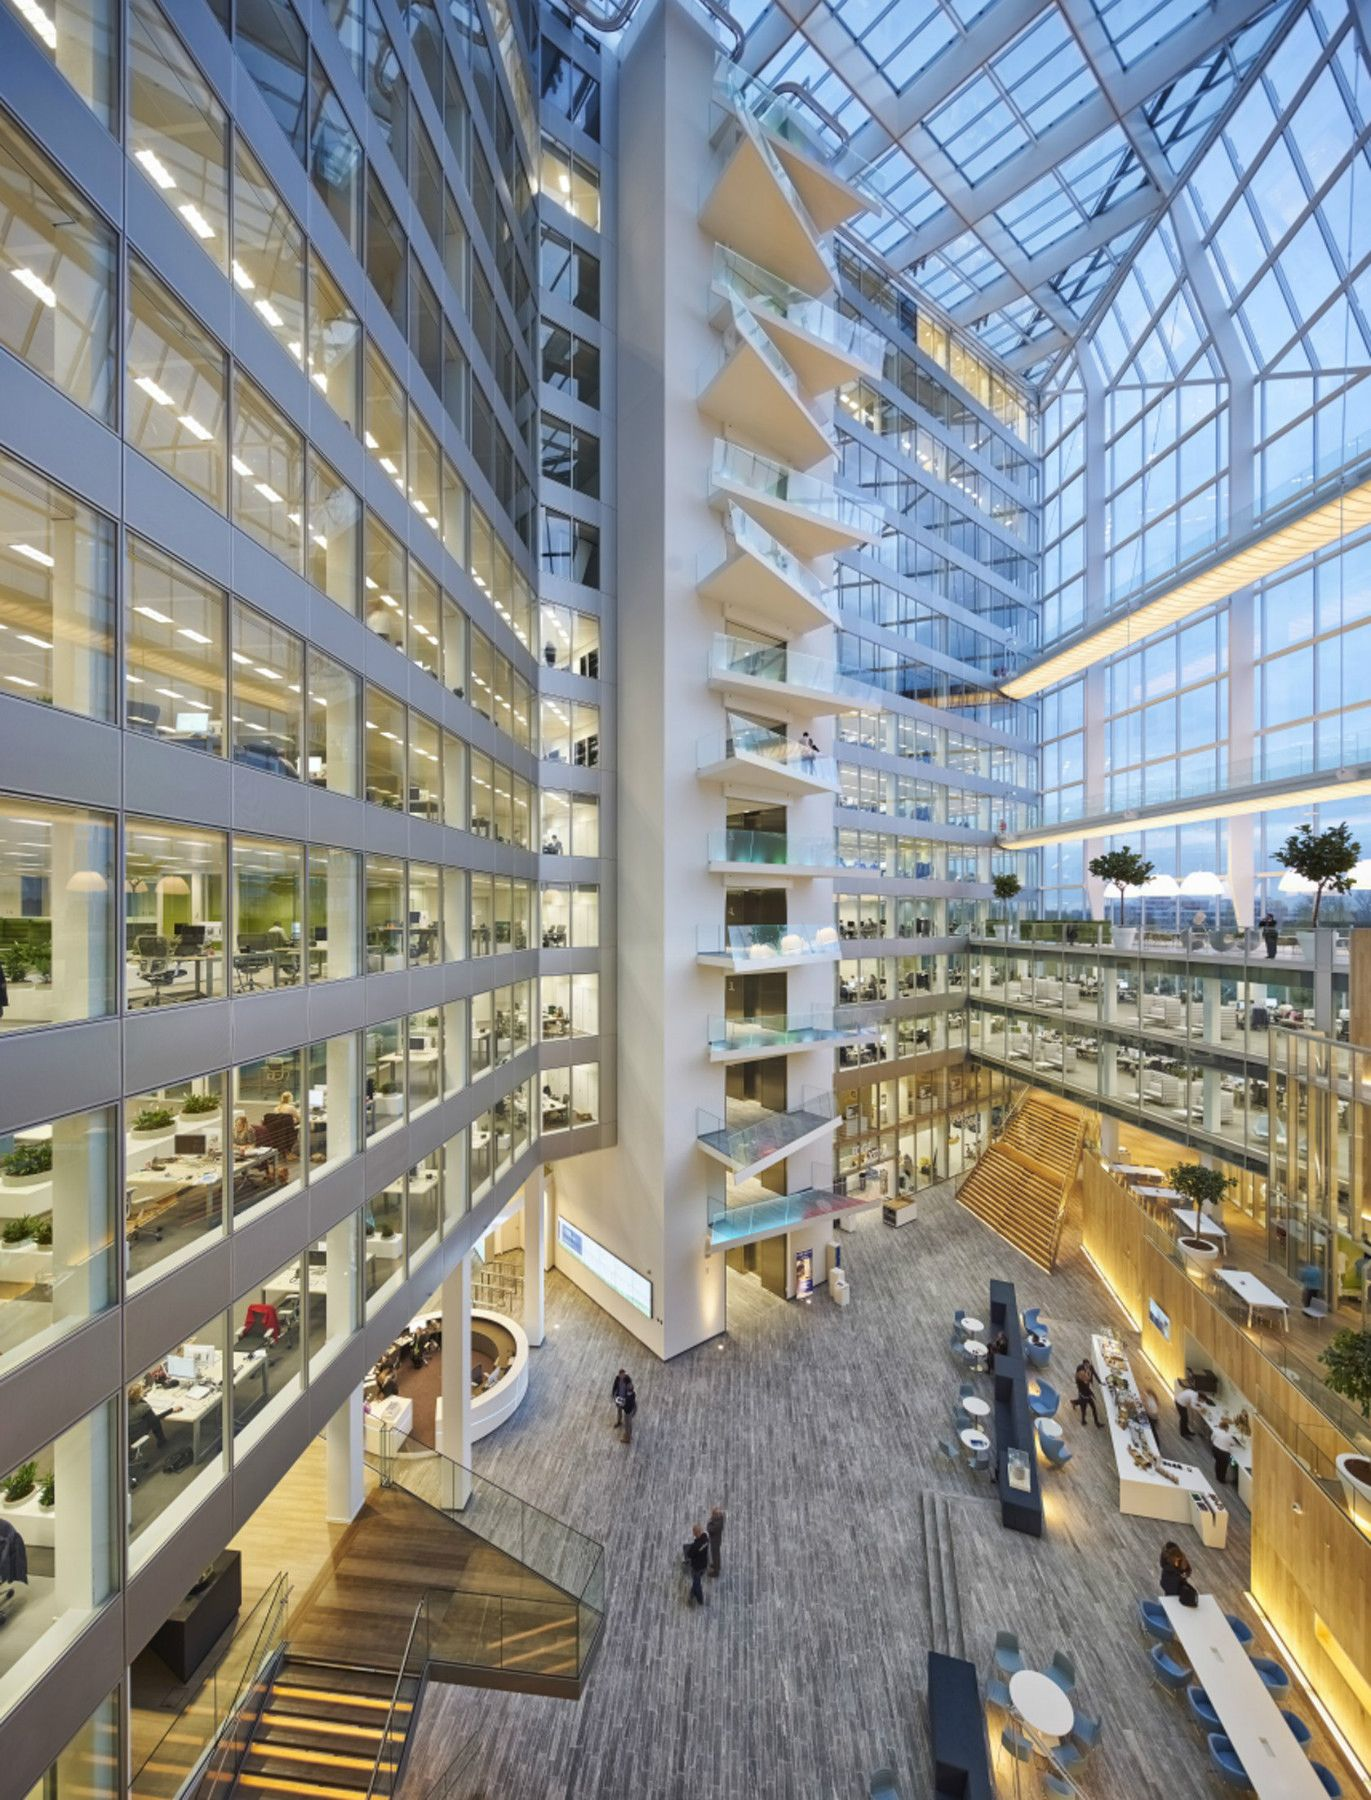 Situated in the center of Amsterdam's Zuidas business district, The Edge is an office building which opens itself up to the city with its 15-storey atrium.